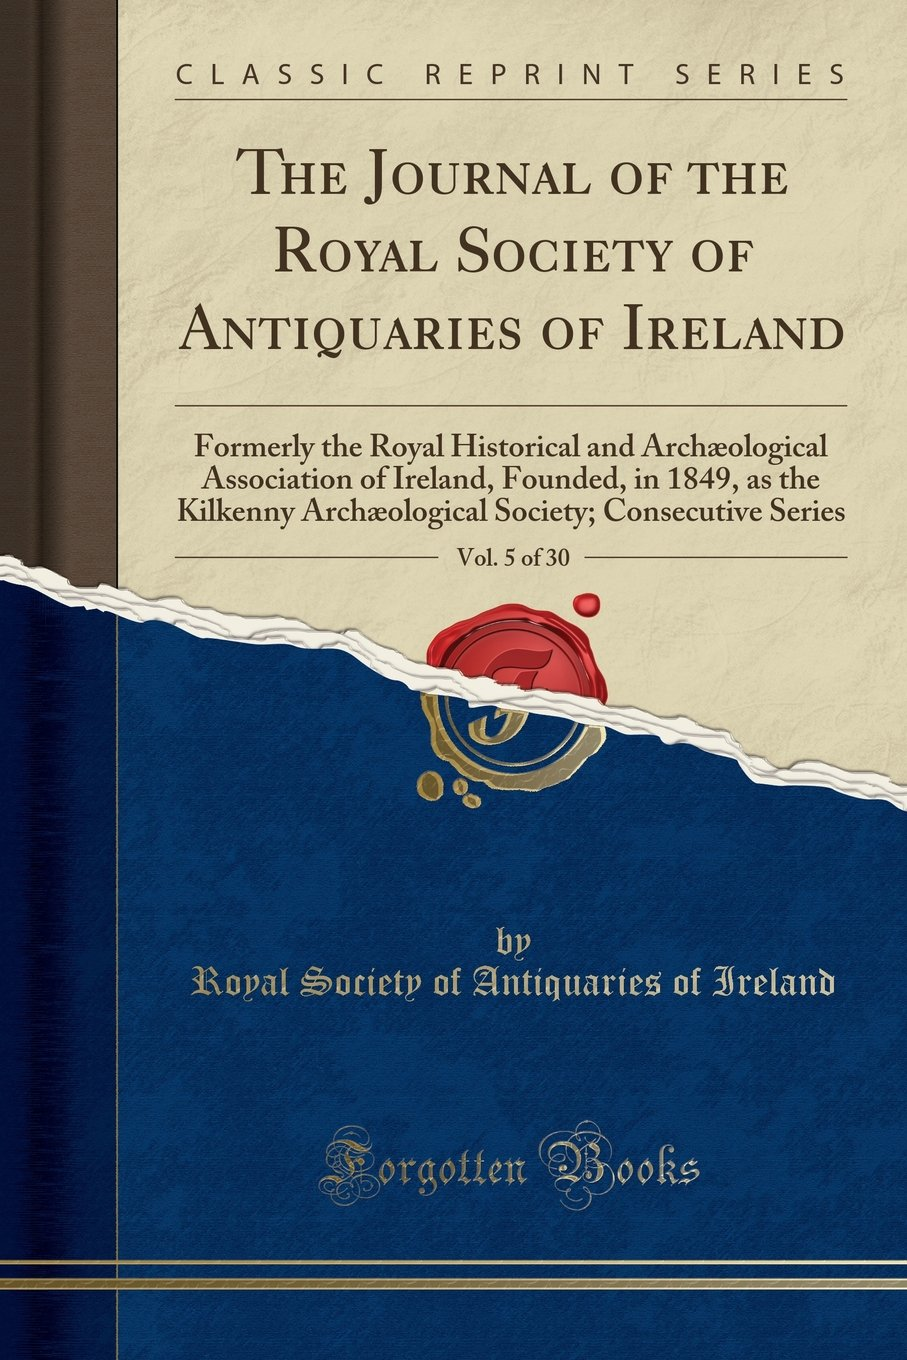 Download The Journal of the Royal Society of Antiquaries of Ireland, Vol. 5 of 30: Formerly the Royal Historical and Archæological Association of Ireland, ... Society; Consecutive Series (Classic Reprint) pdf